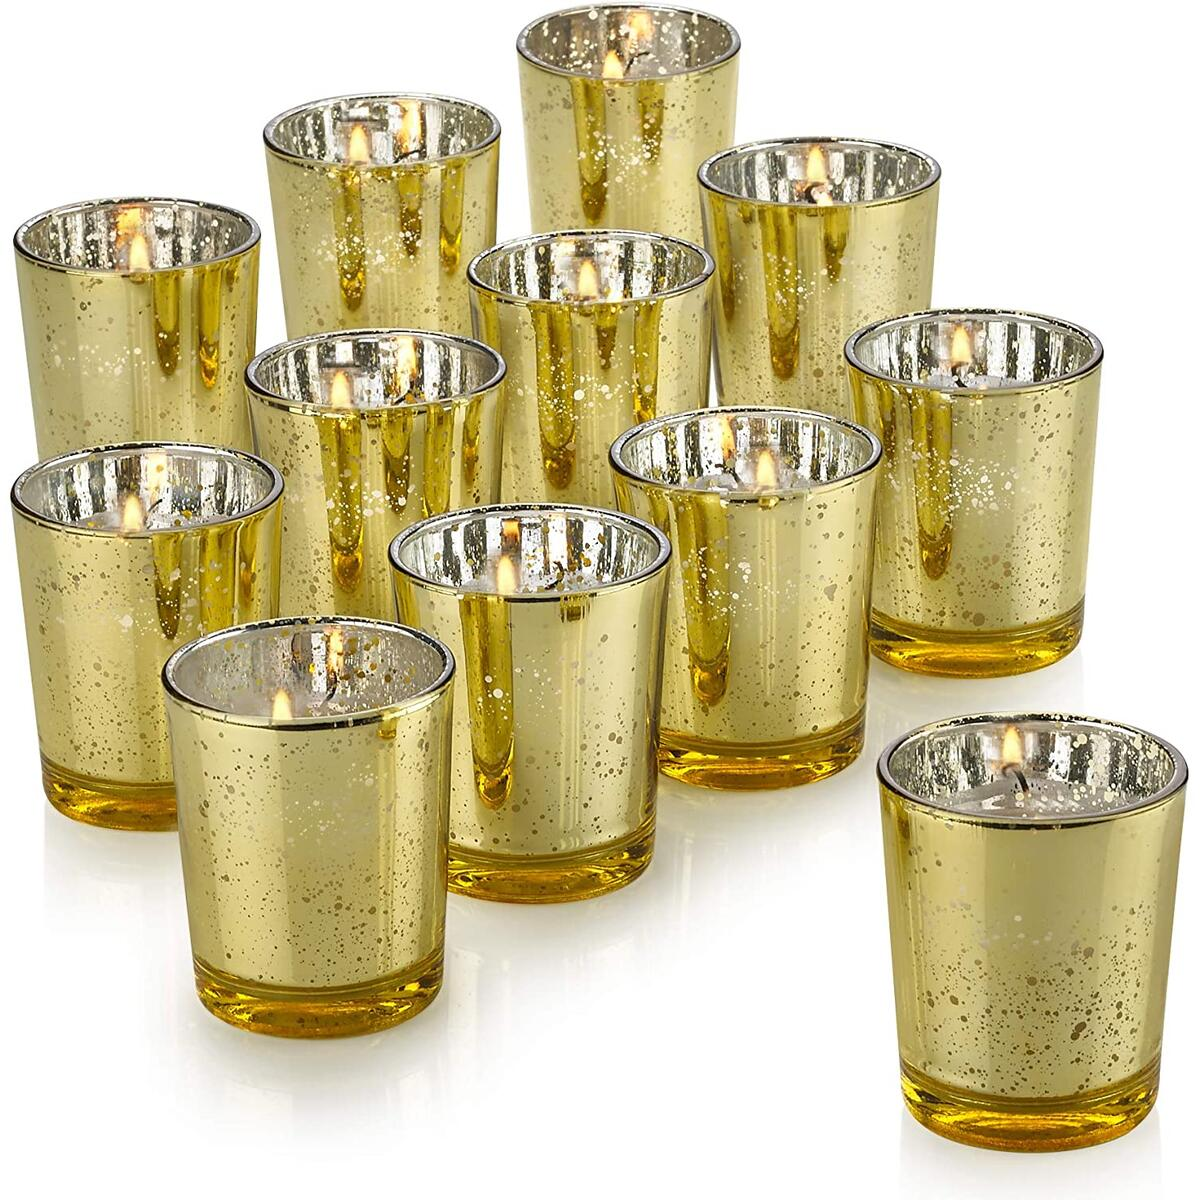 PARNOO Mercury Glass Candle Holders for Votive Candles and Tealights Set of 12 – Sparkled Gold Finish Perfect for Wedding and Home Décor